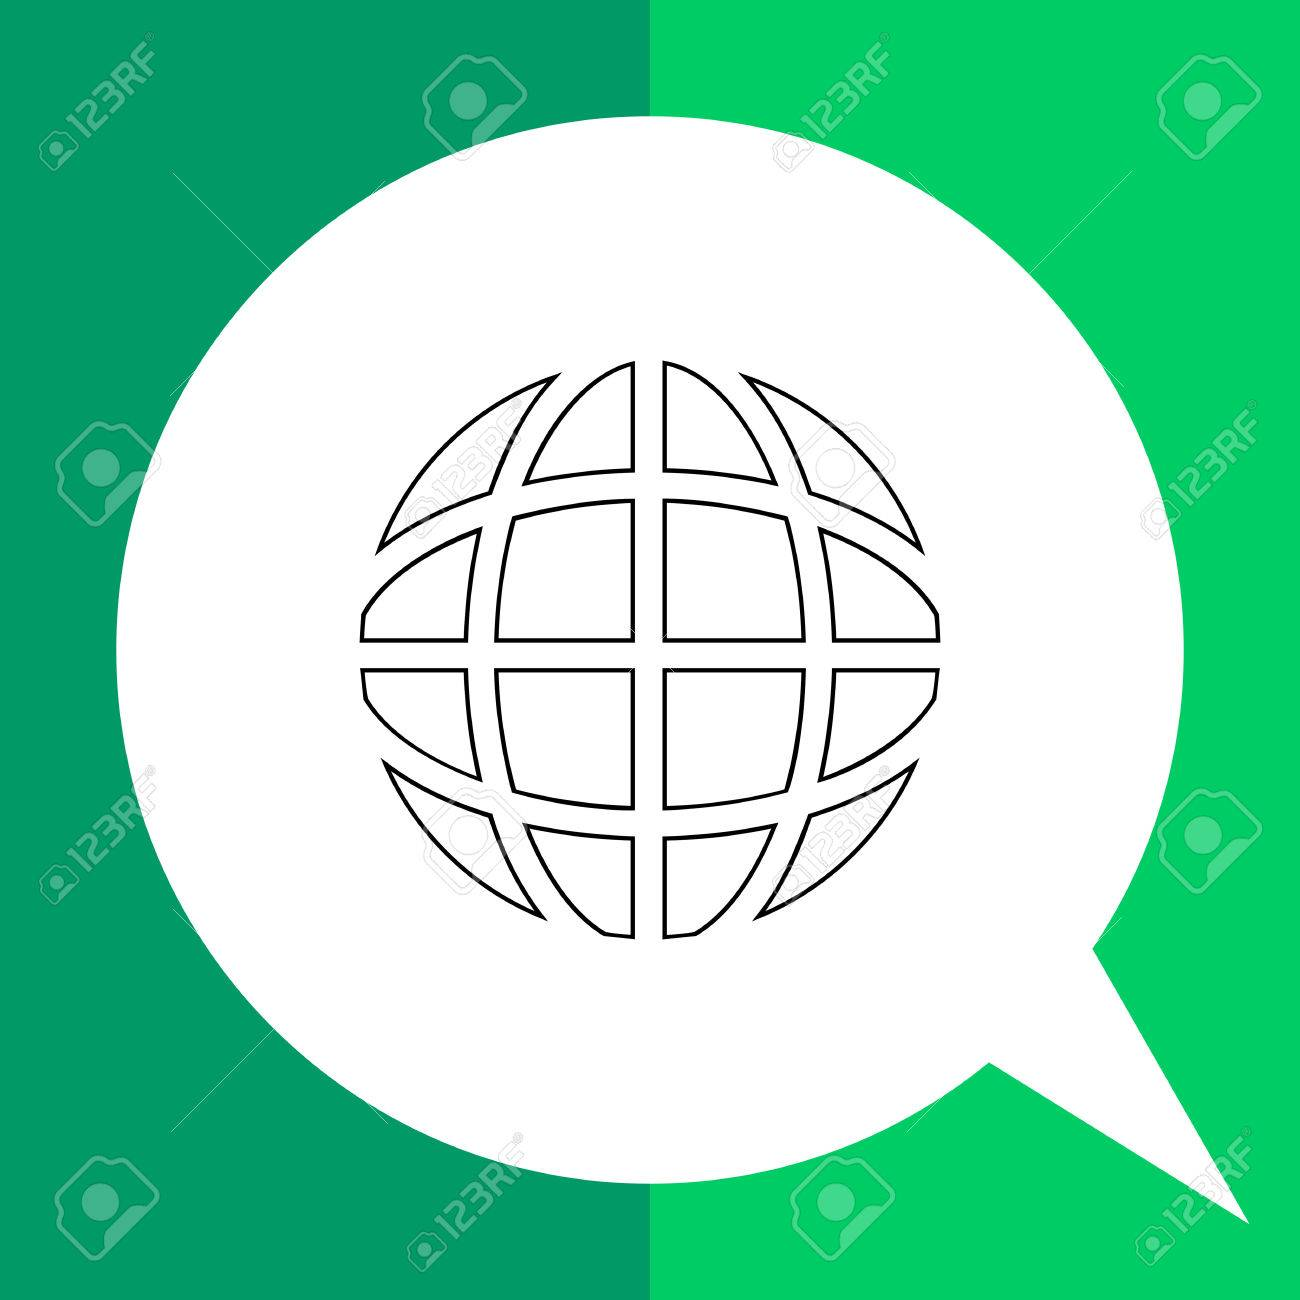 Vector   Vector Line Icon Of Globe With Longitude And Latitude Lines  Representing Internet Concept